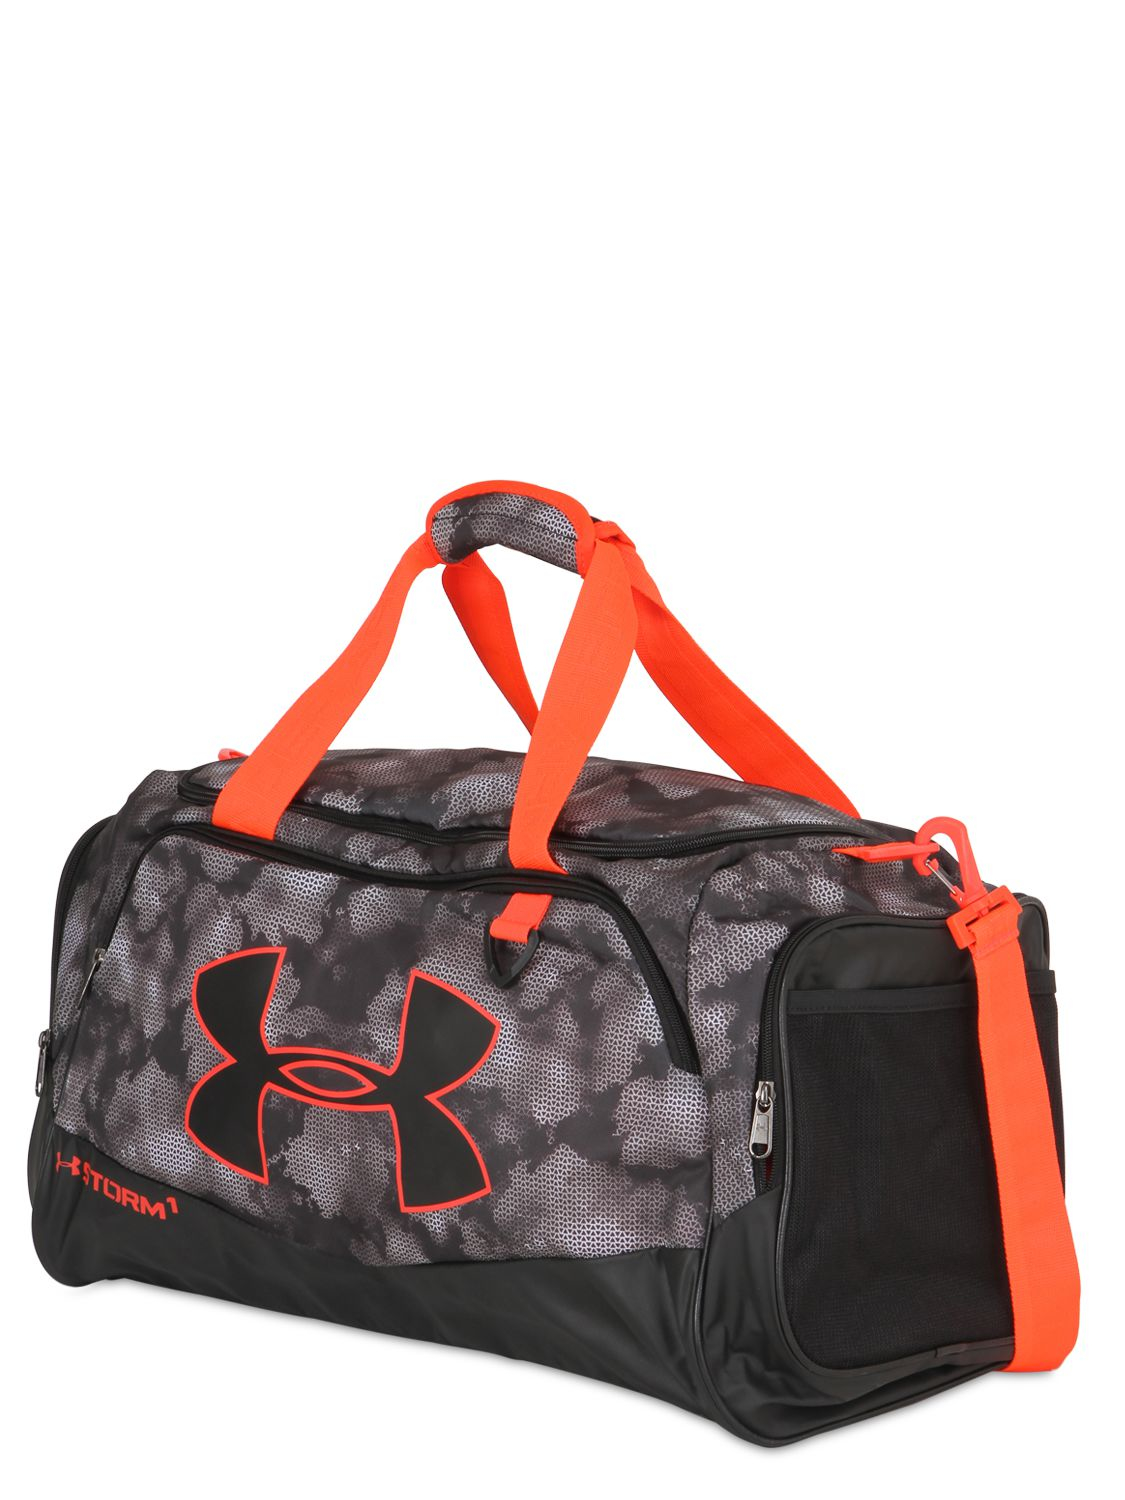 a4052a57e0f Under Armour 60l Medium Ua Storm Gym Duffle Bag in Black - Lyst